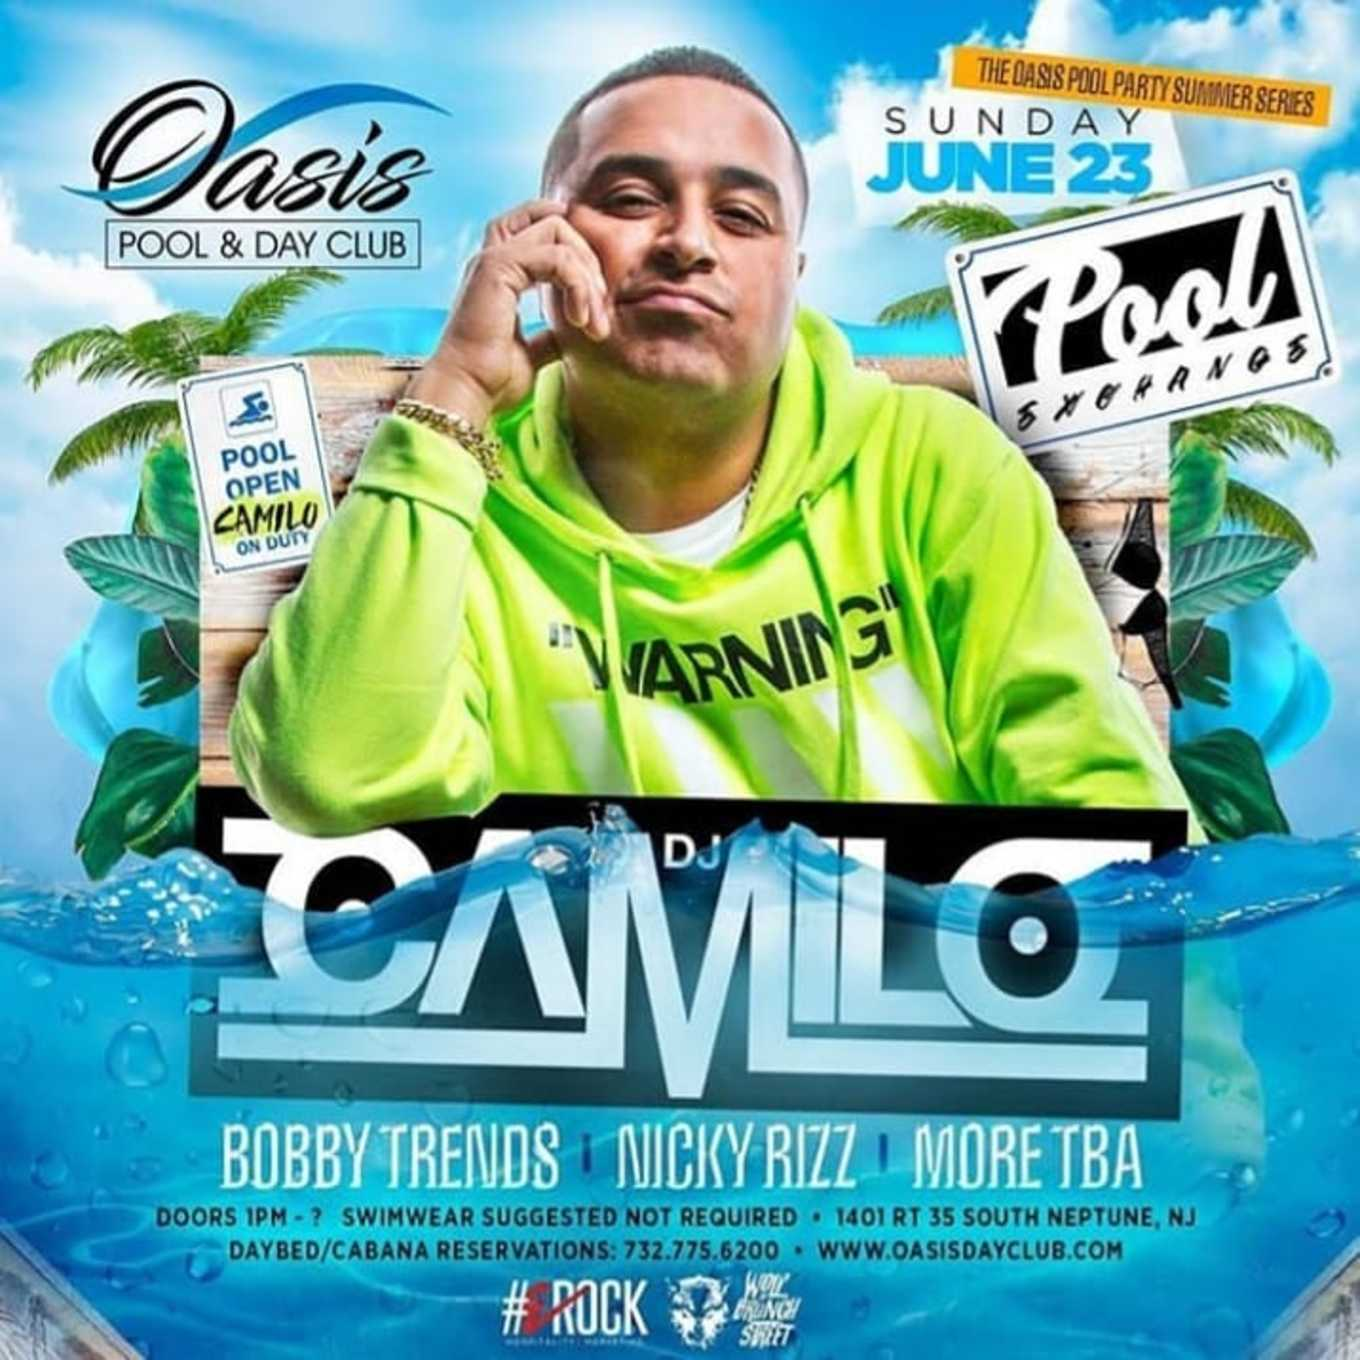 Pool Exchange DJ Camilo Live With DJ Bobby Trends At Oasis Pool